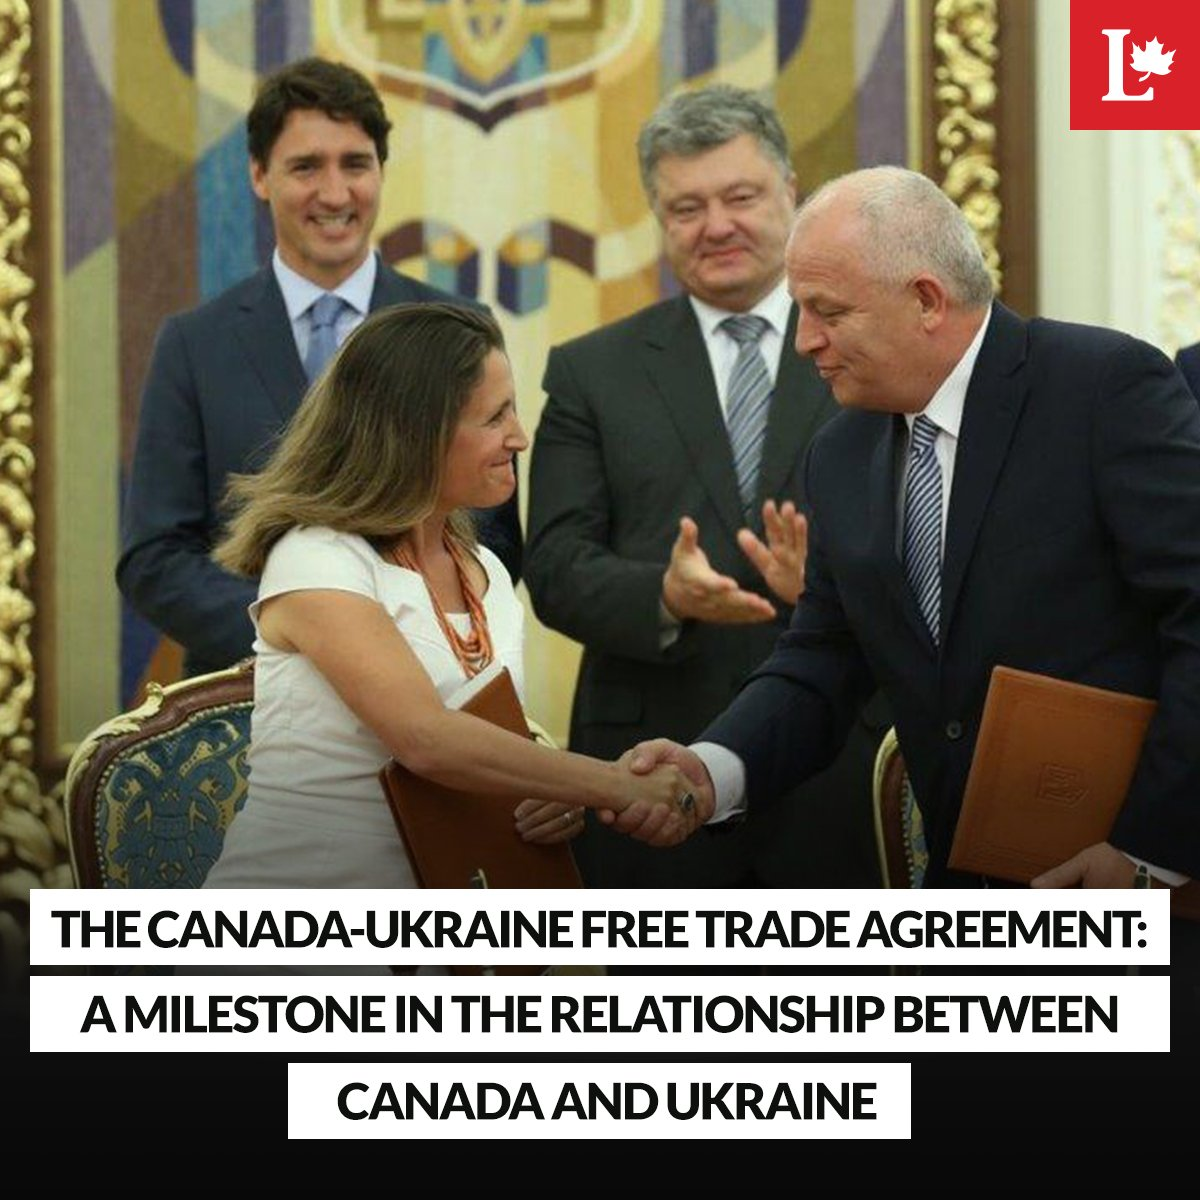 An important step to deepen economic ties between Canada and Ukraine #CUFTA tabled in Parliament today #cdnpoli https://t.co/0p4F8hipqB